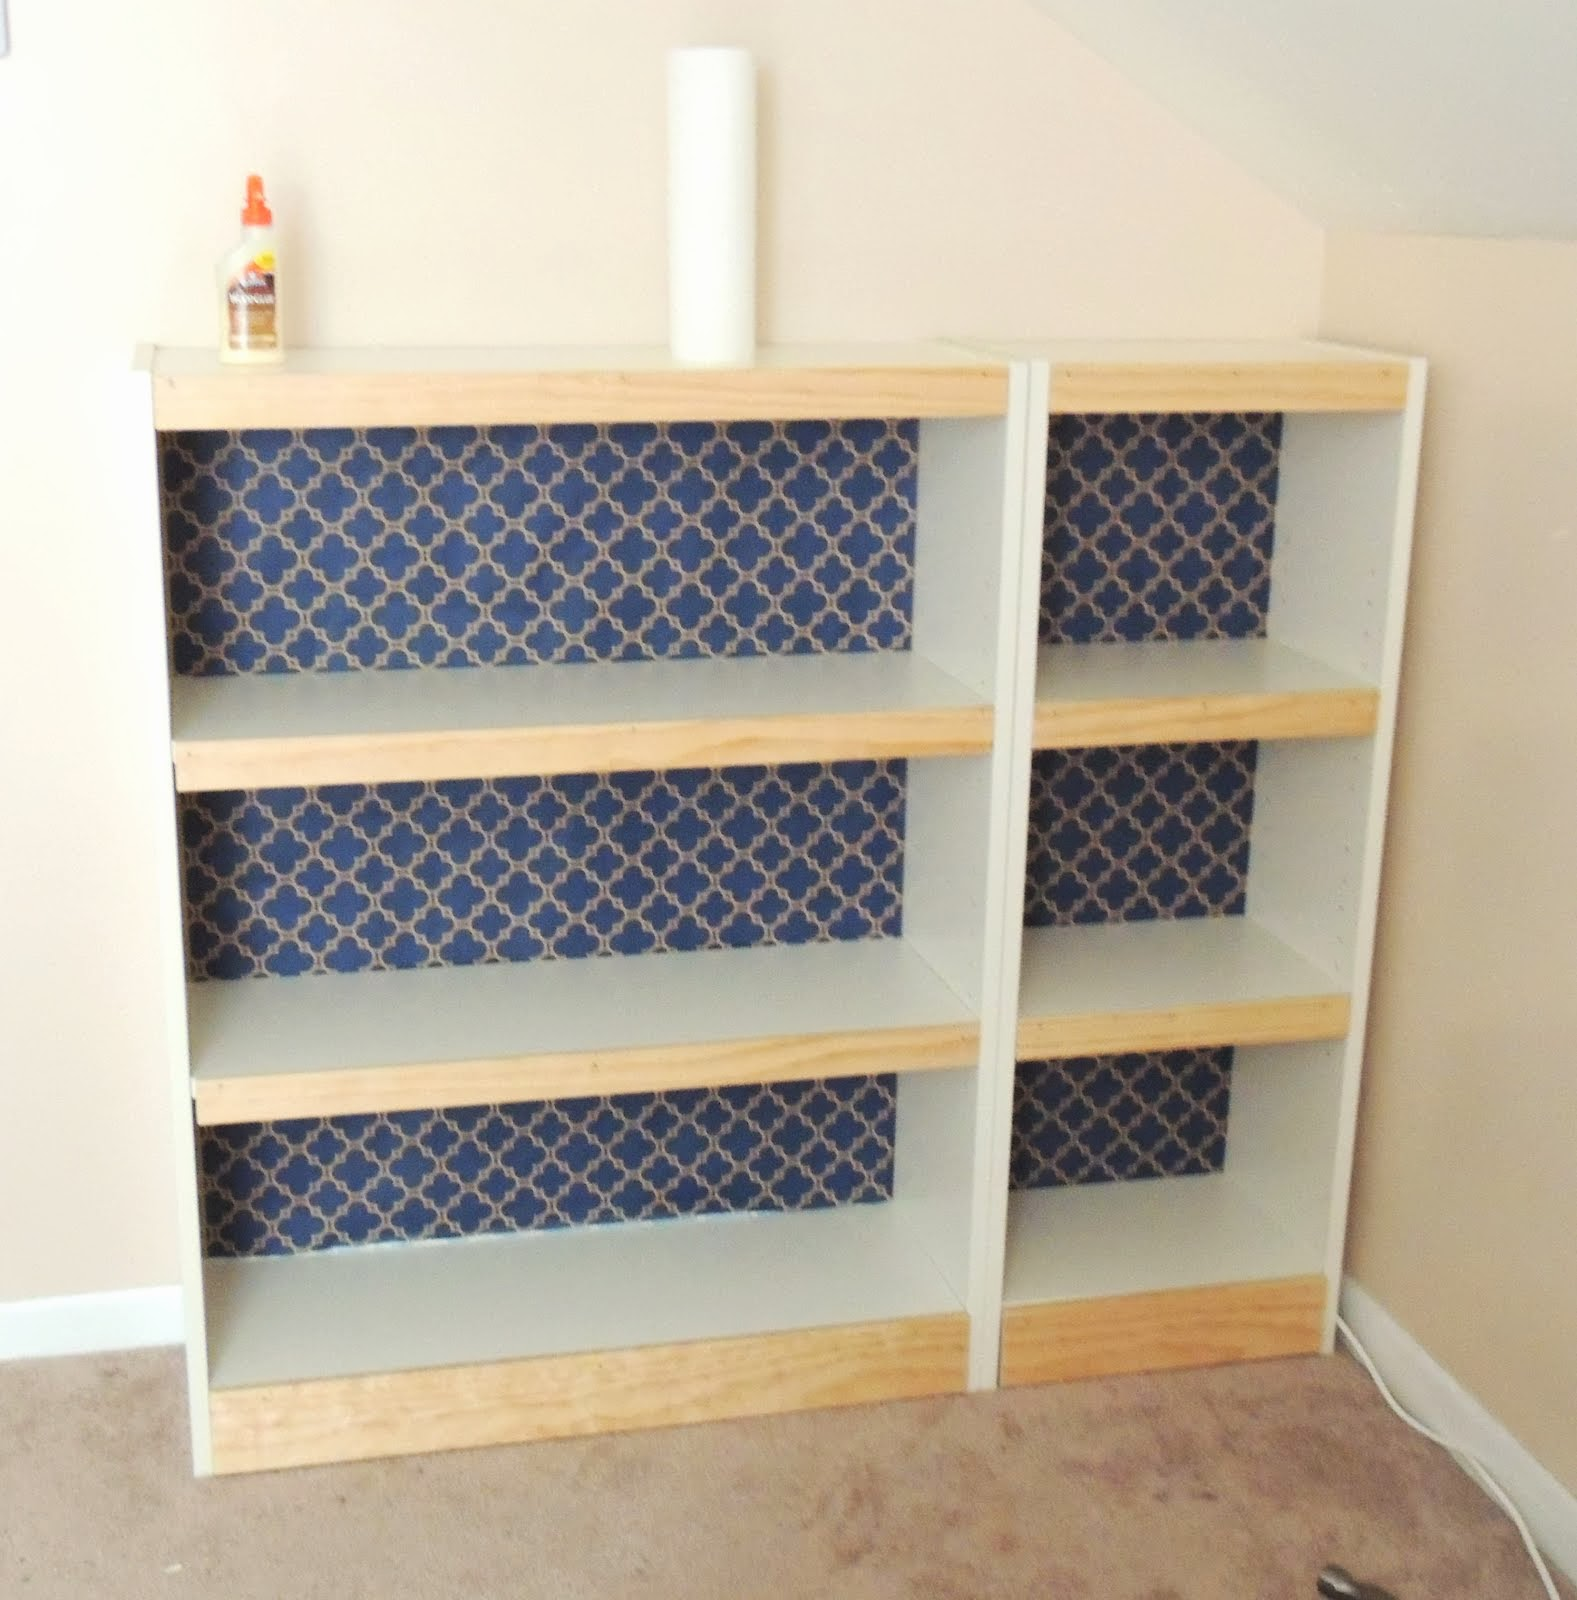 billy bookcase face lift ikea hackers ikea hackers. Black Bedroom Furniture Sets. Home Design Ideas